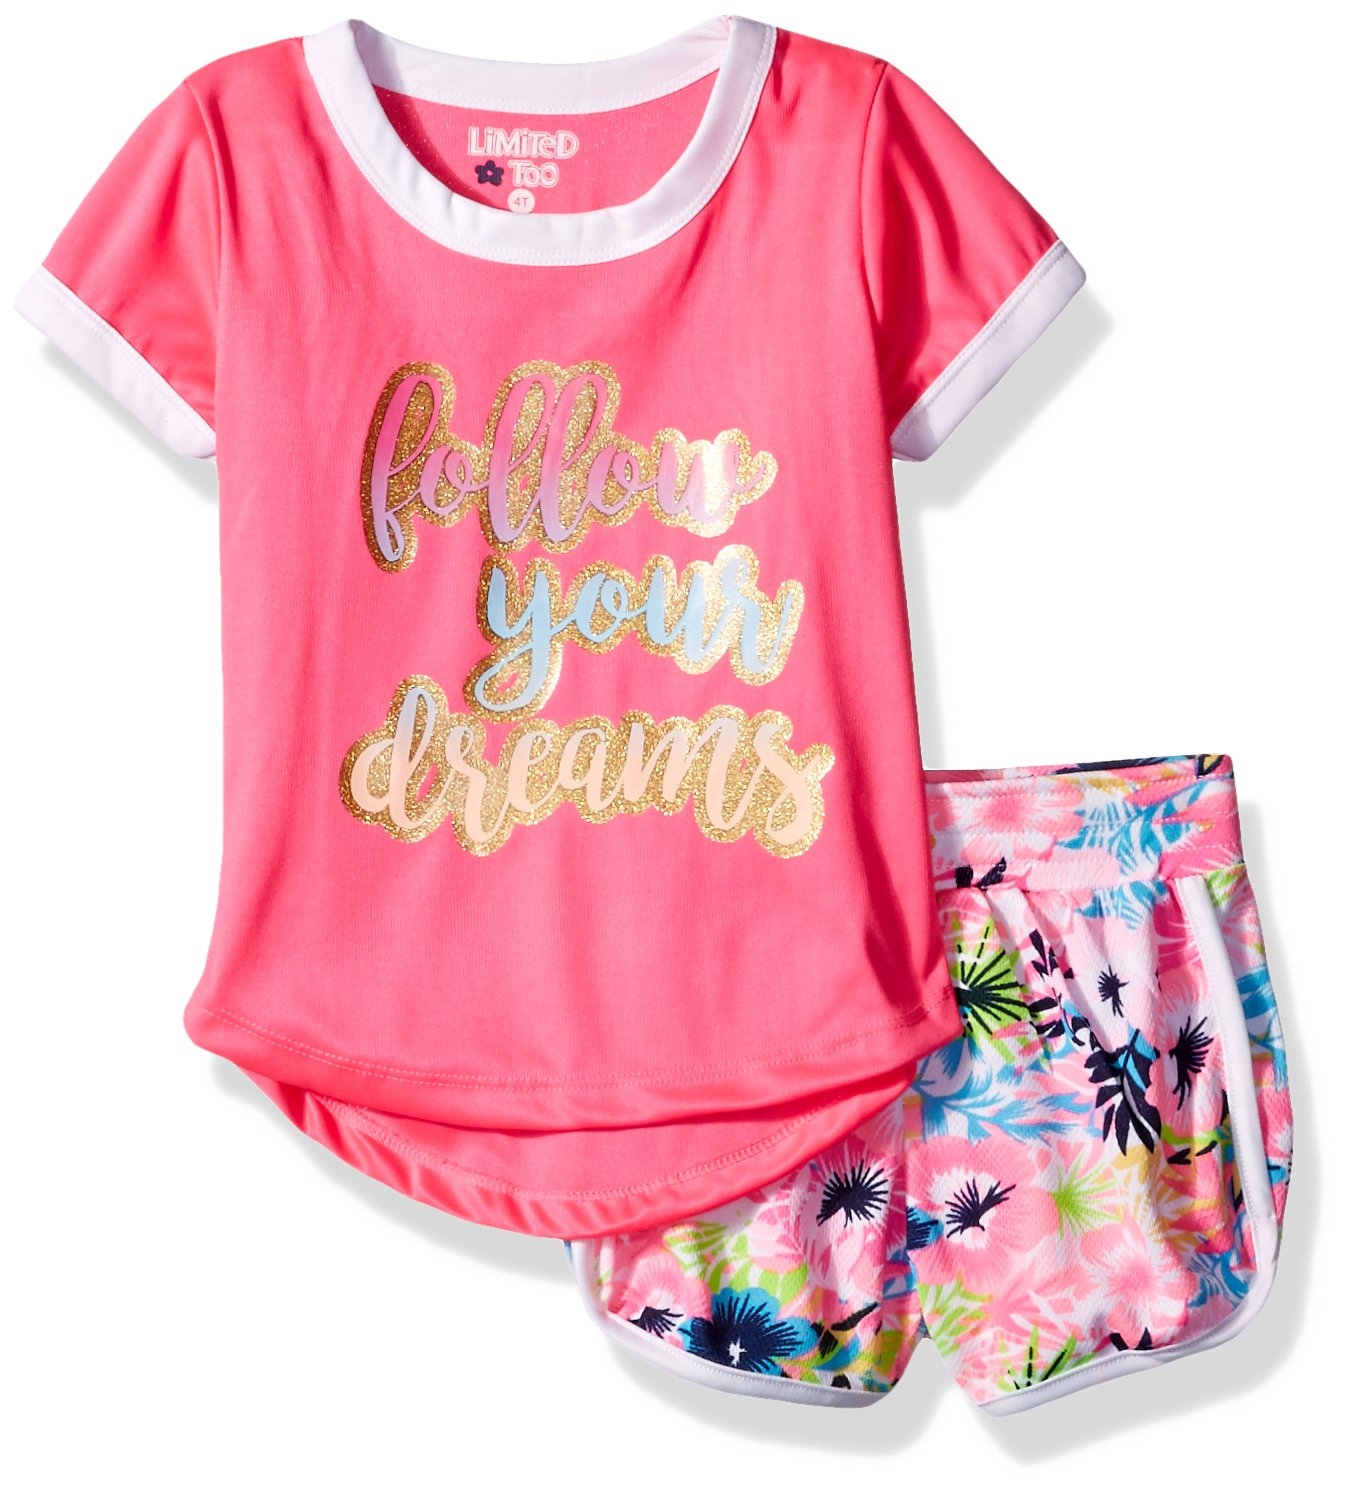 Limited Too Toddler Girls' Knit Top and Short Set (More Styles Available), Multi Print, 3T